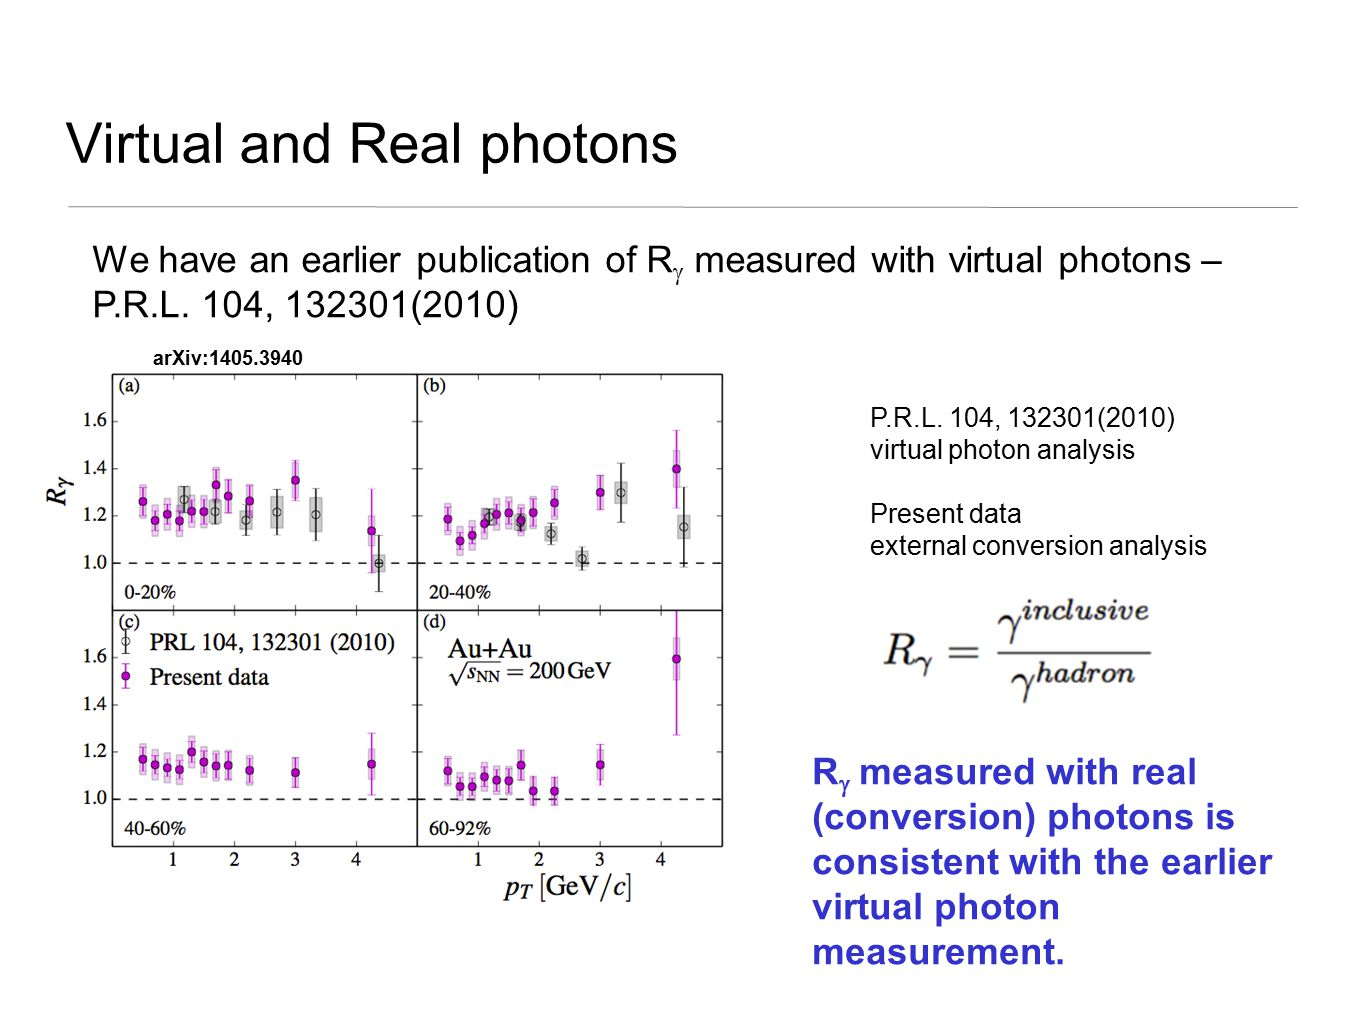 Virtual and Real photons R  measured with real (conversion) photons is consistent with the earlier virtual photon measurement.